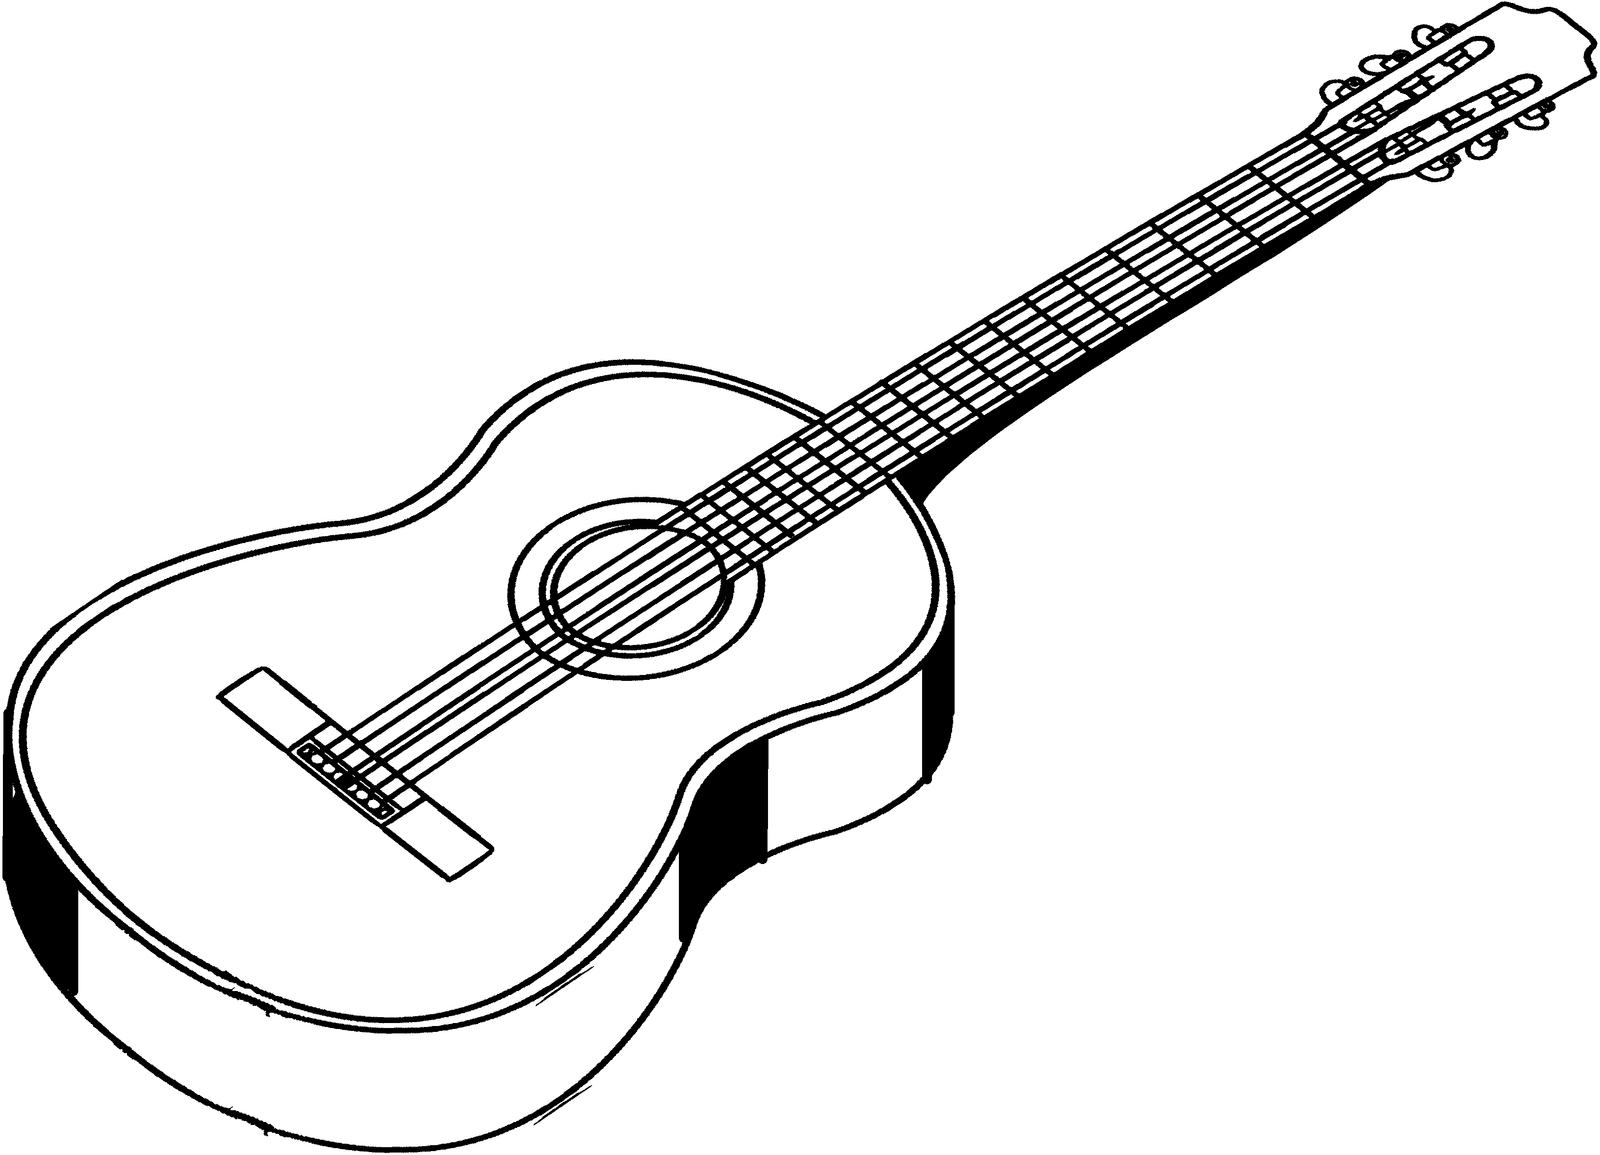 Line Drawing Music : Line art of an acoustic guitar by ihcoyc on deviantart